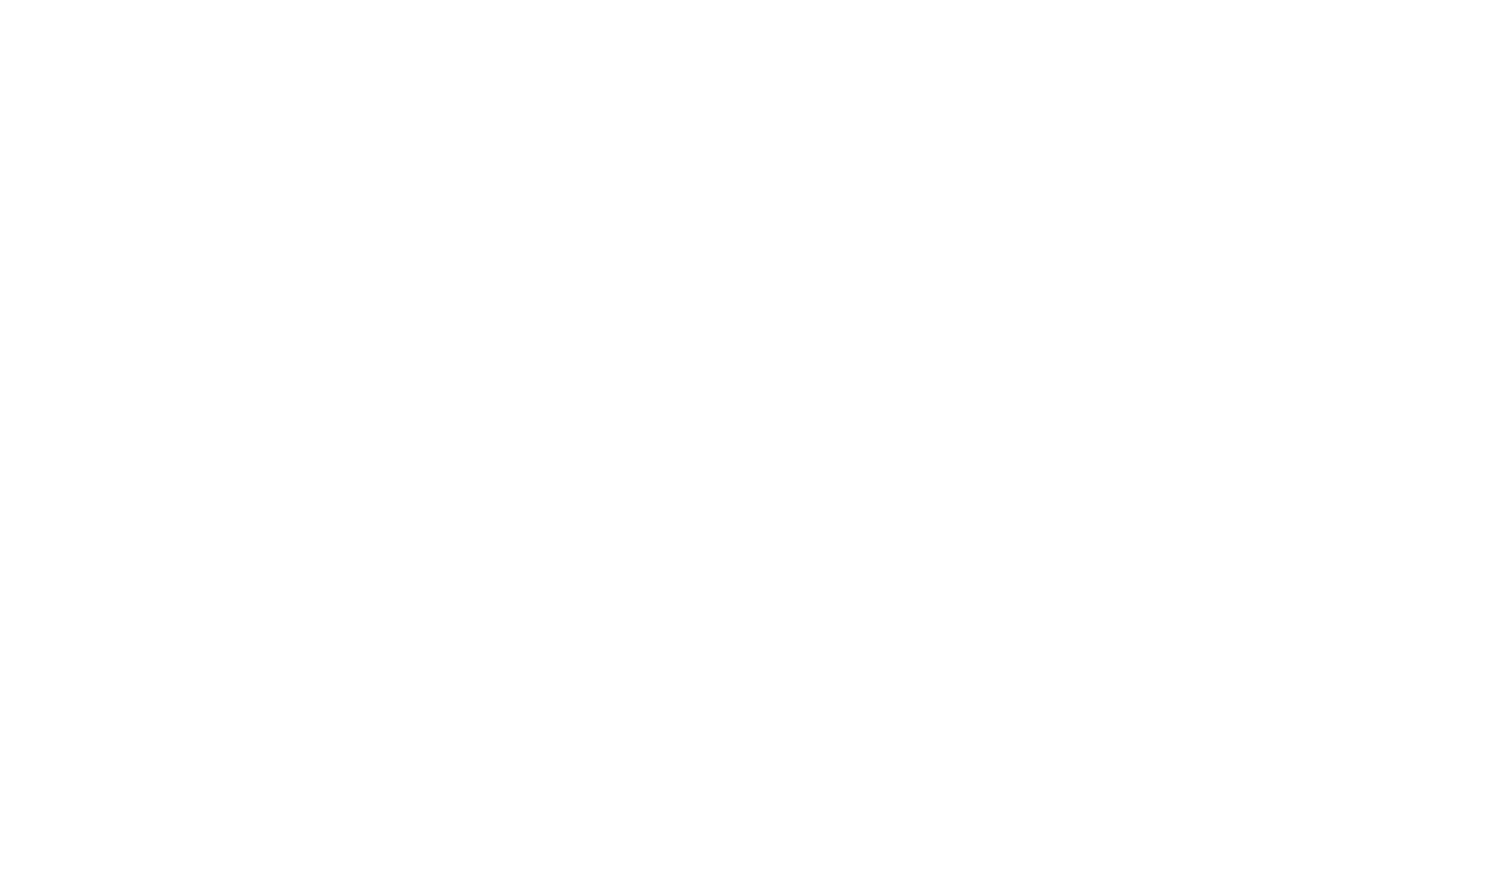 Infertility Counseling Center of Jacksonville